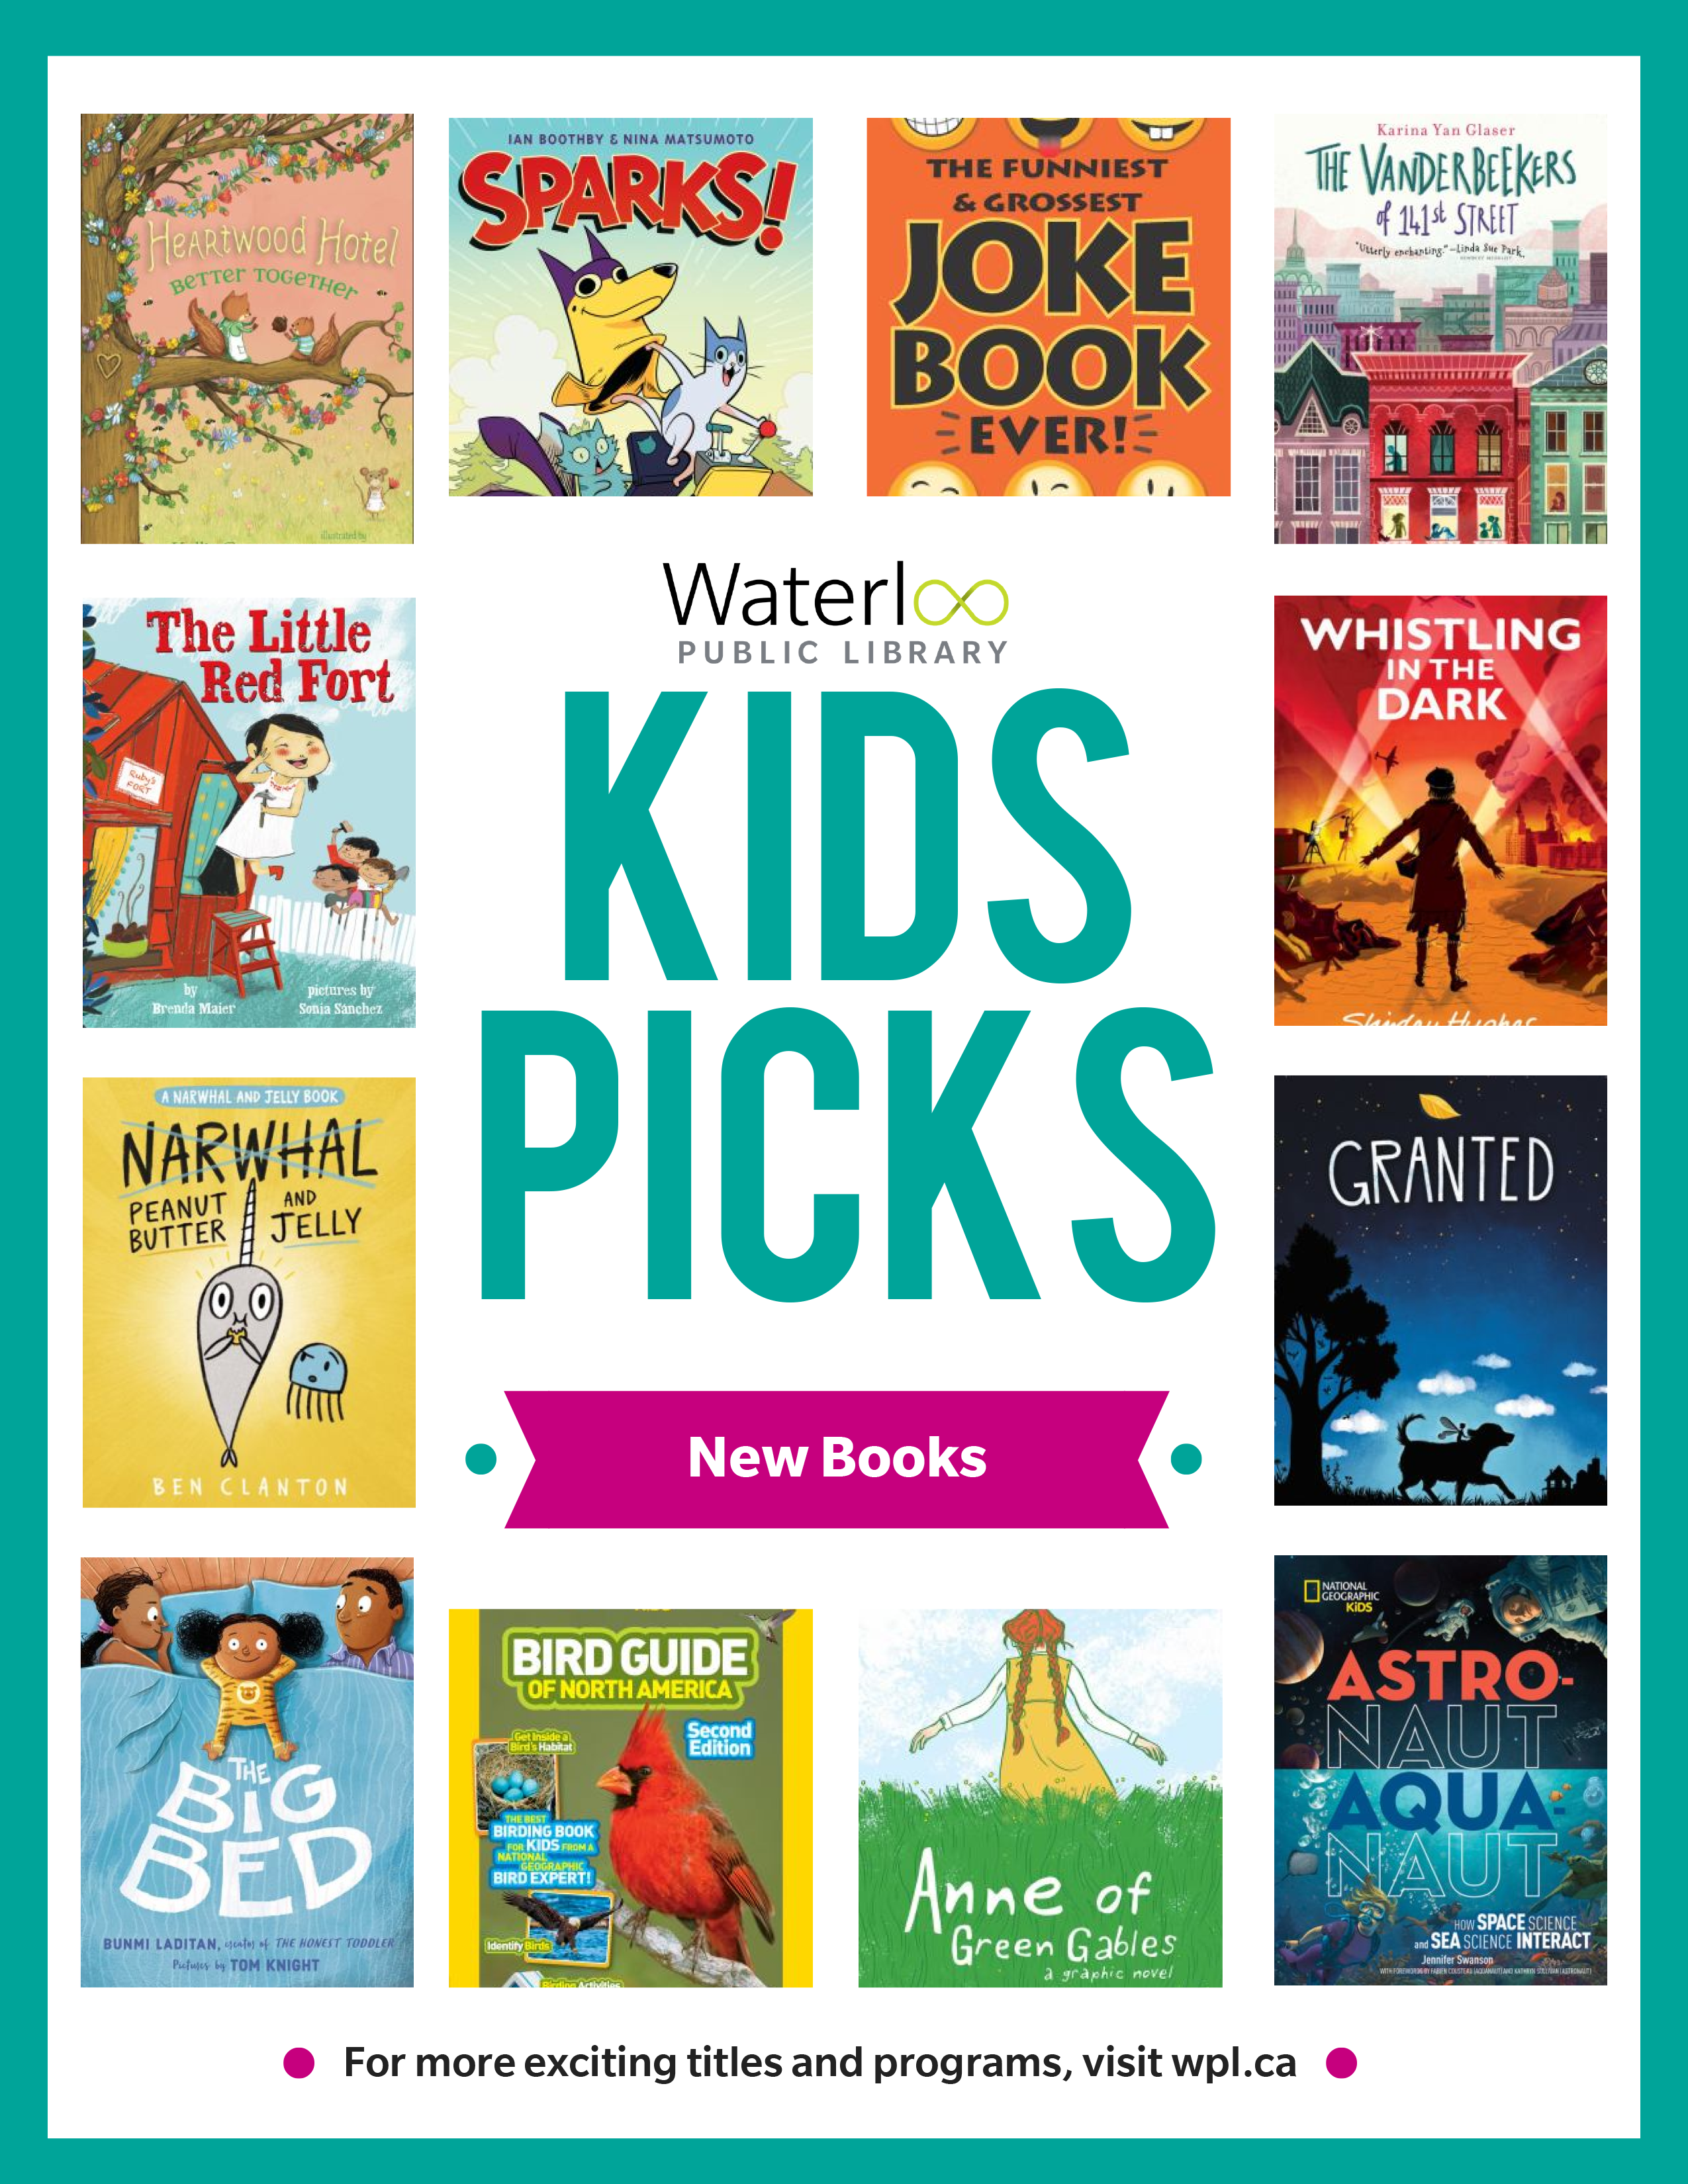 Covers of a selection of new kids books